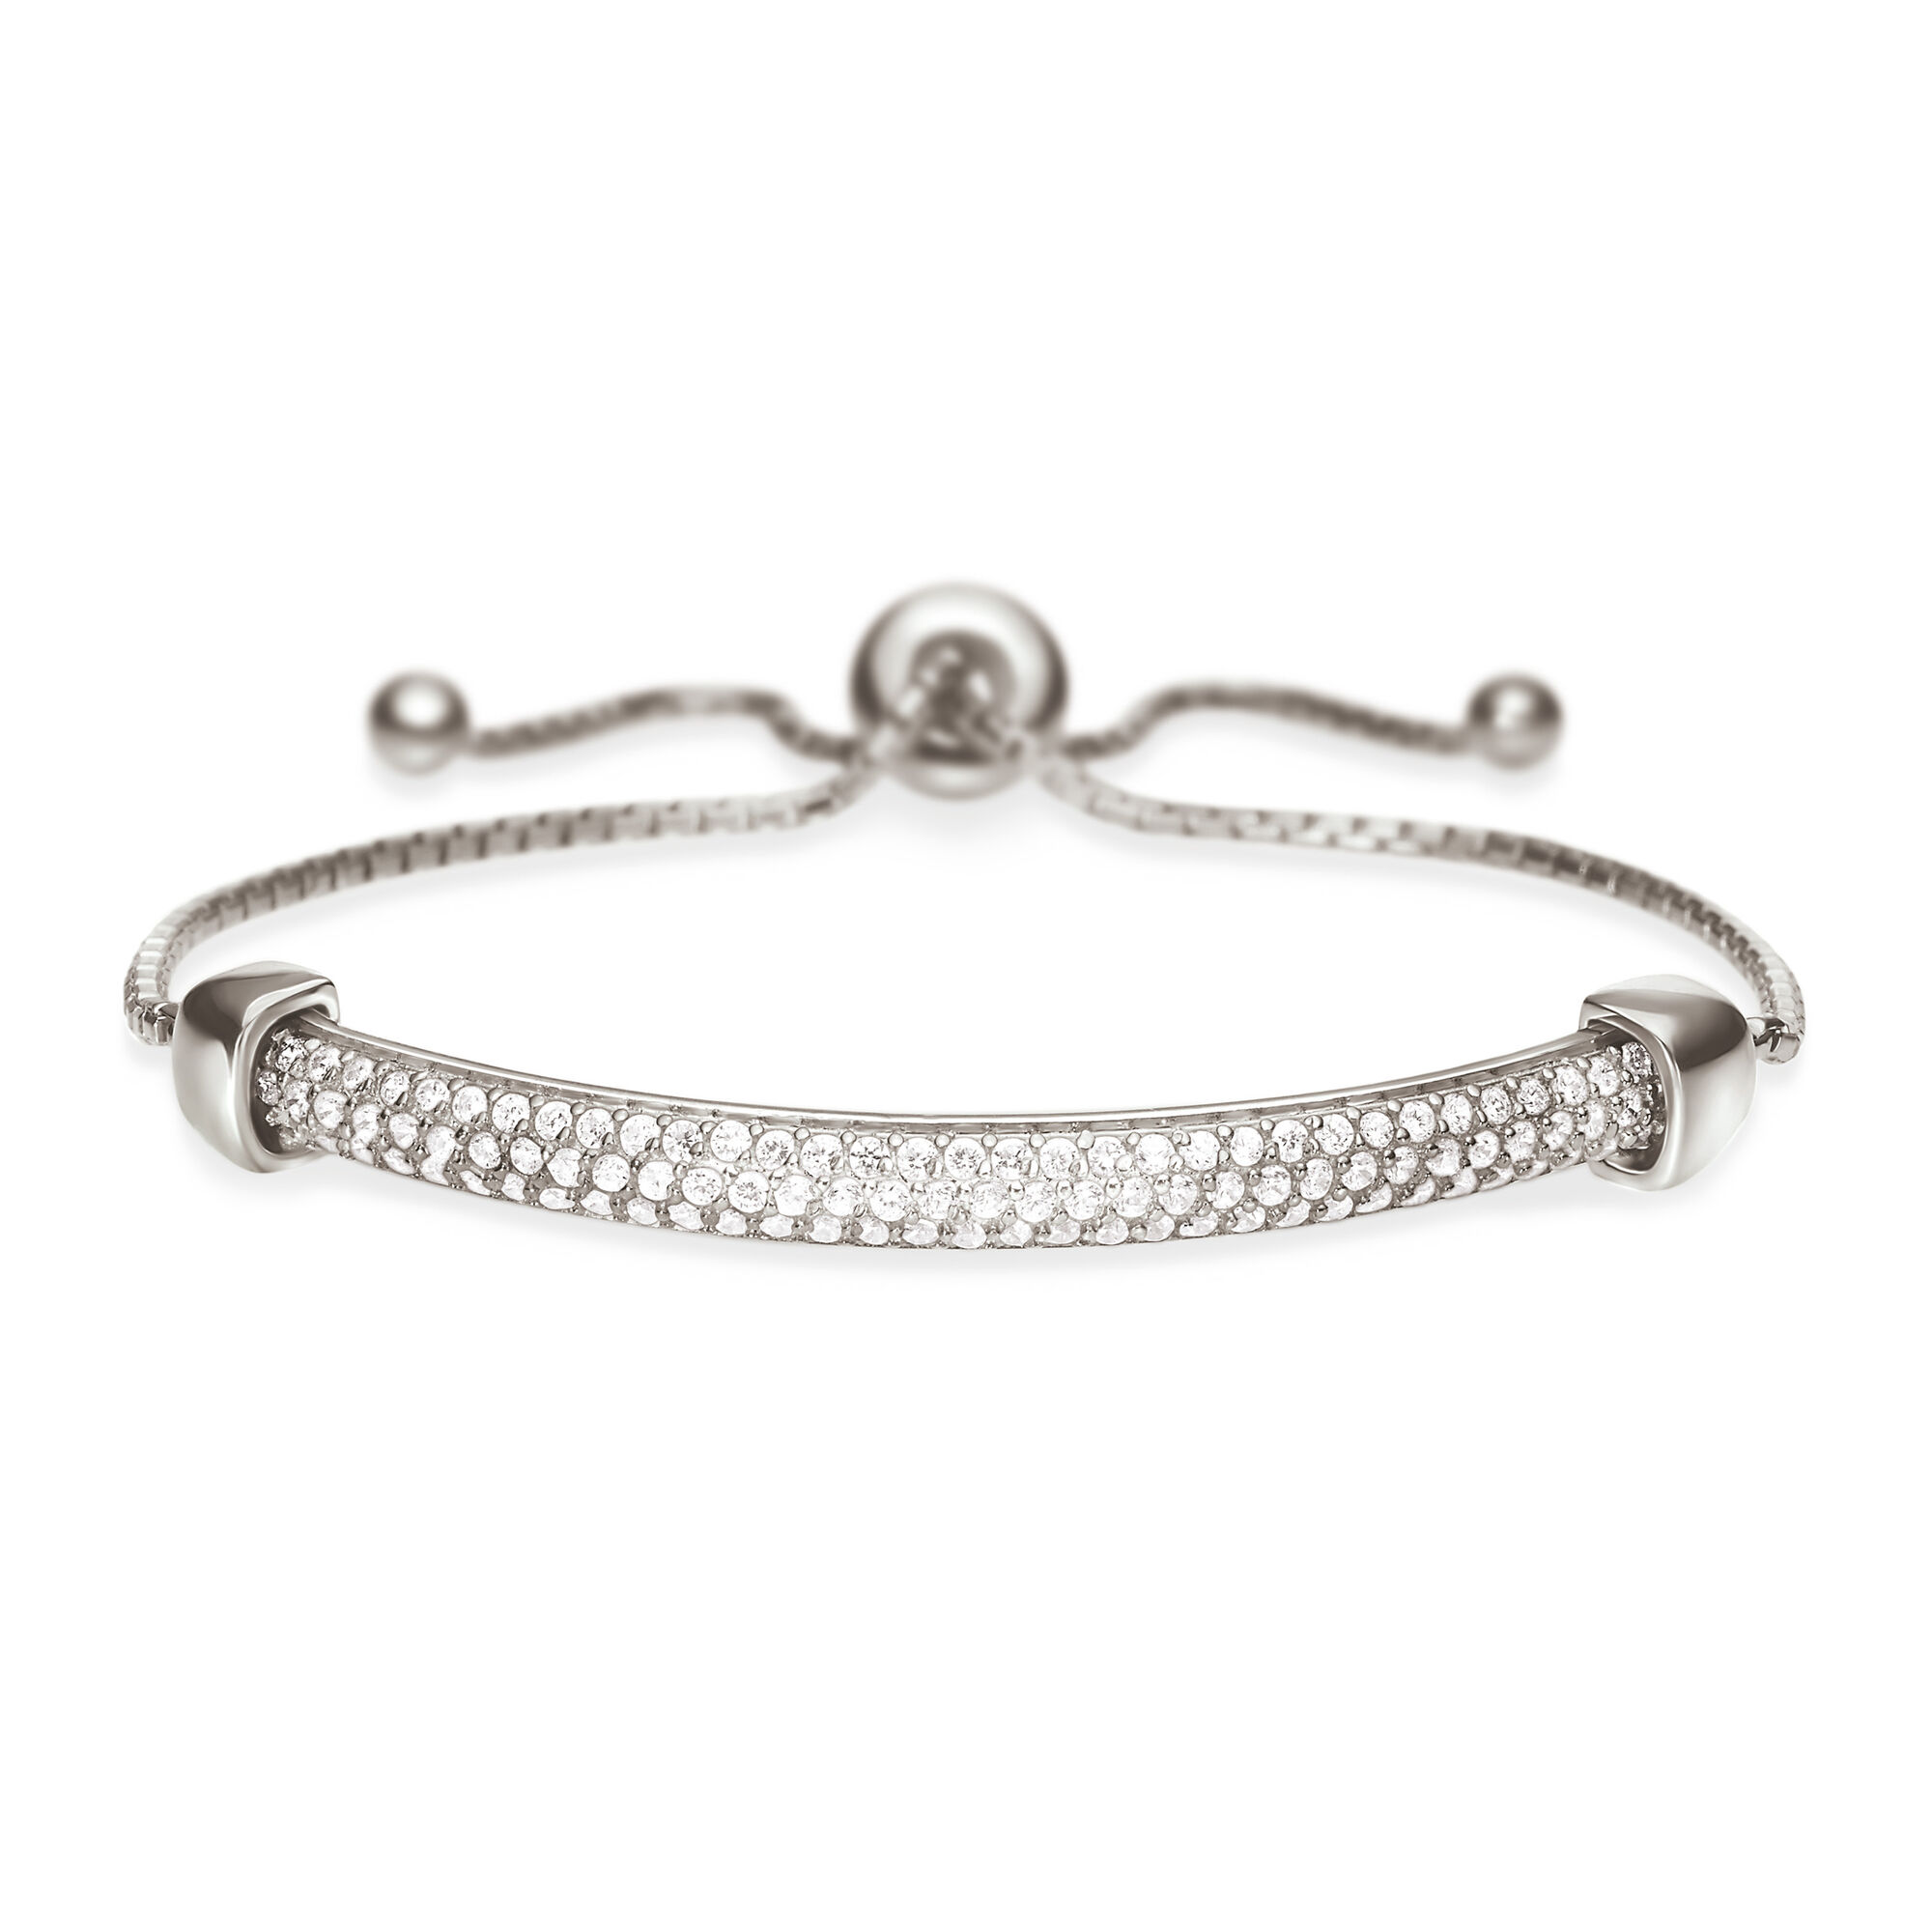 sterling narrative london adjustable of bangle bracelet en bangles silver links hires eu